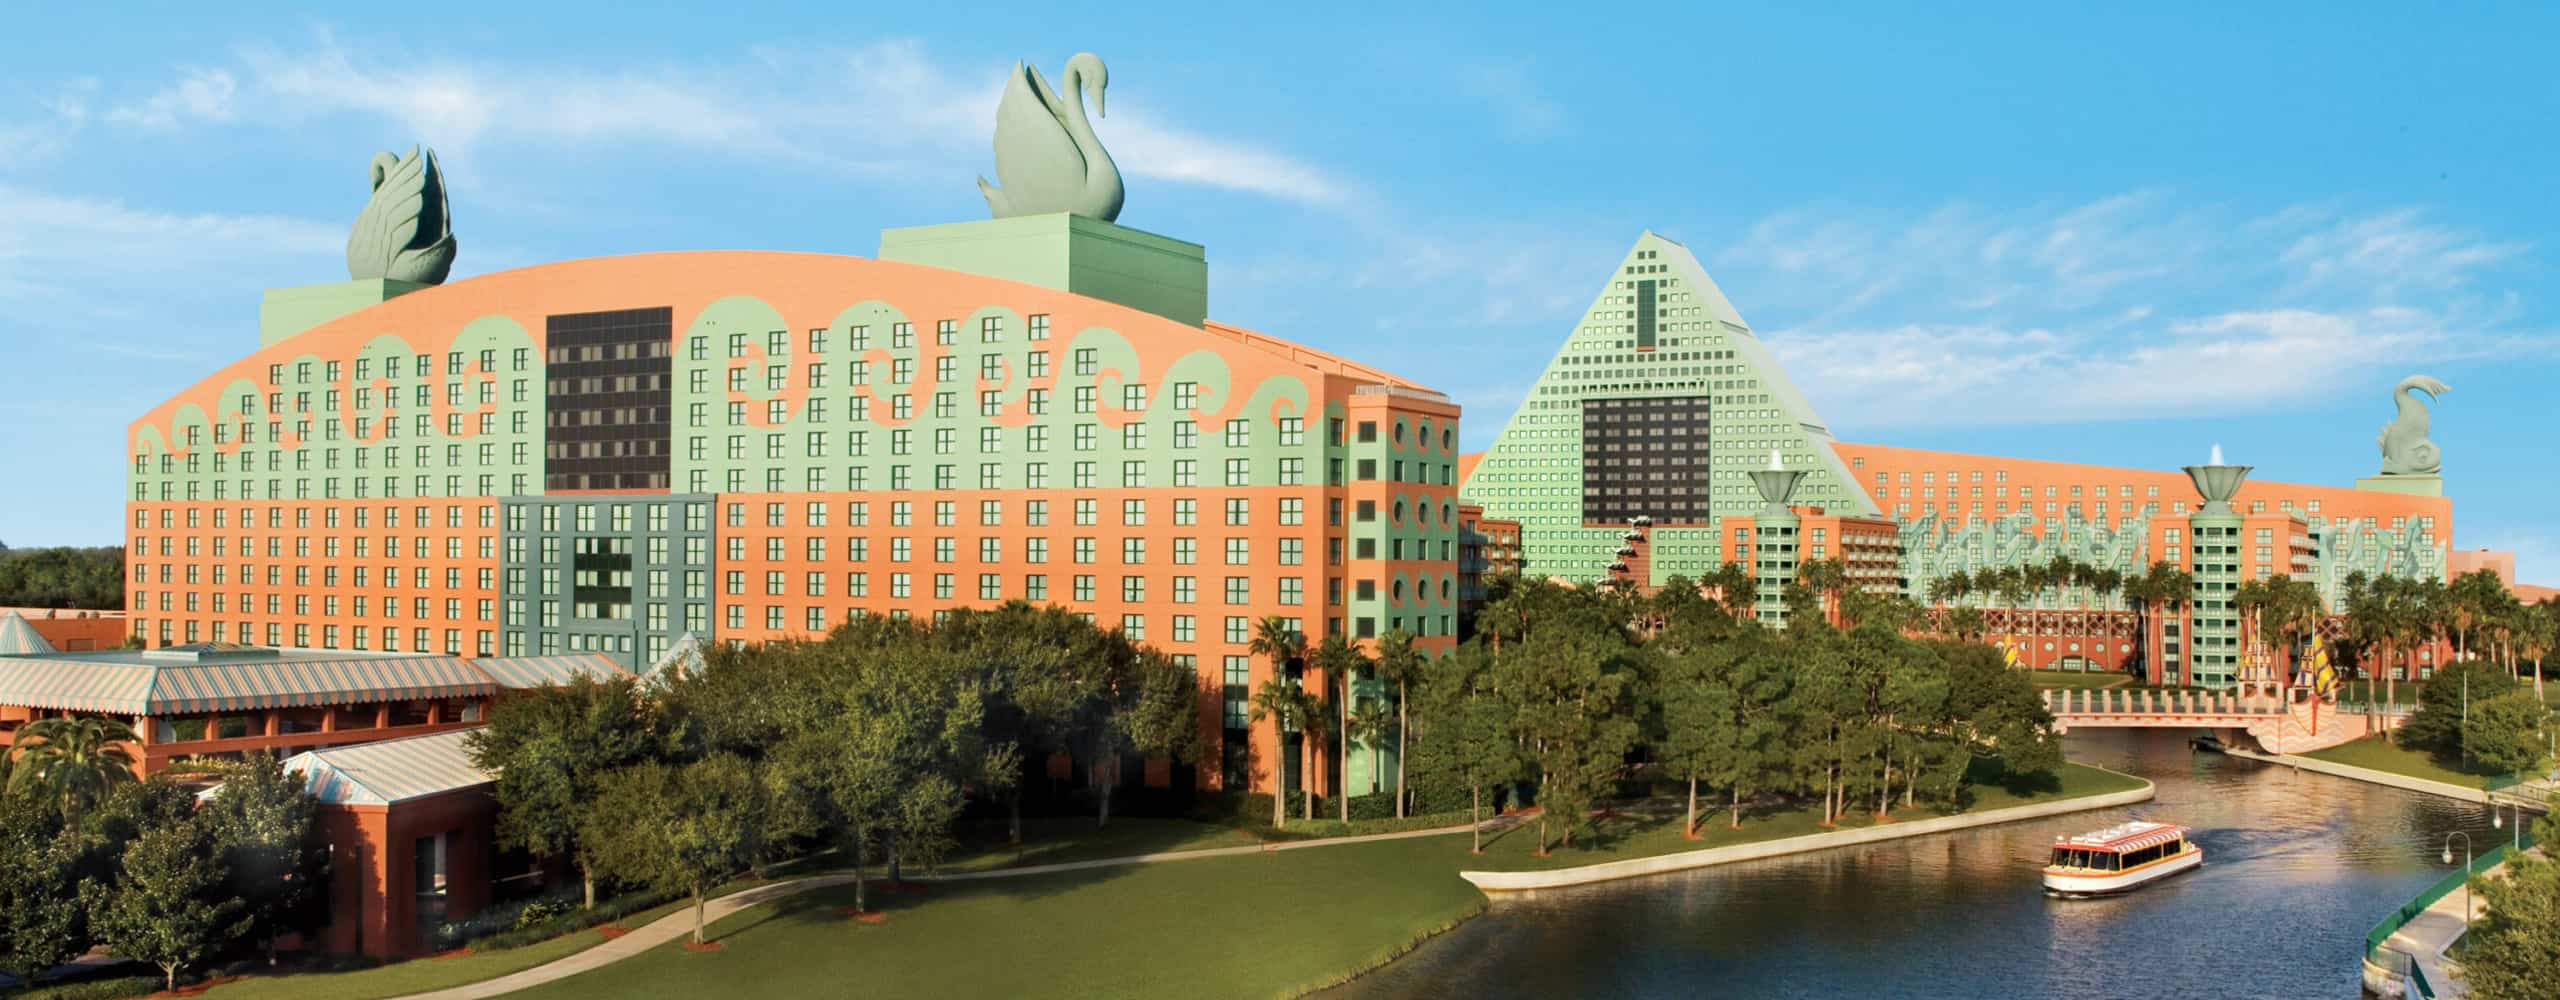 Walt Disney World Swan And Dolphin Resort, Florida